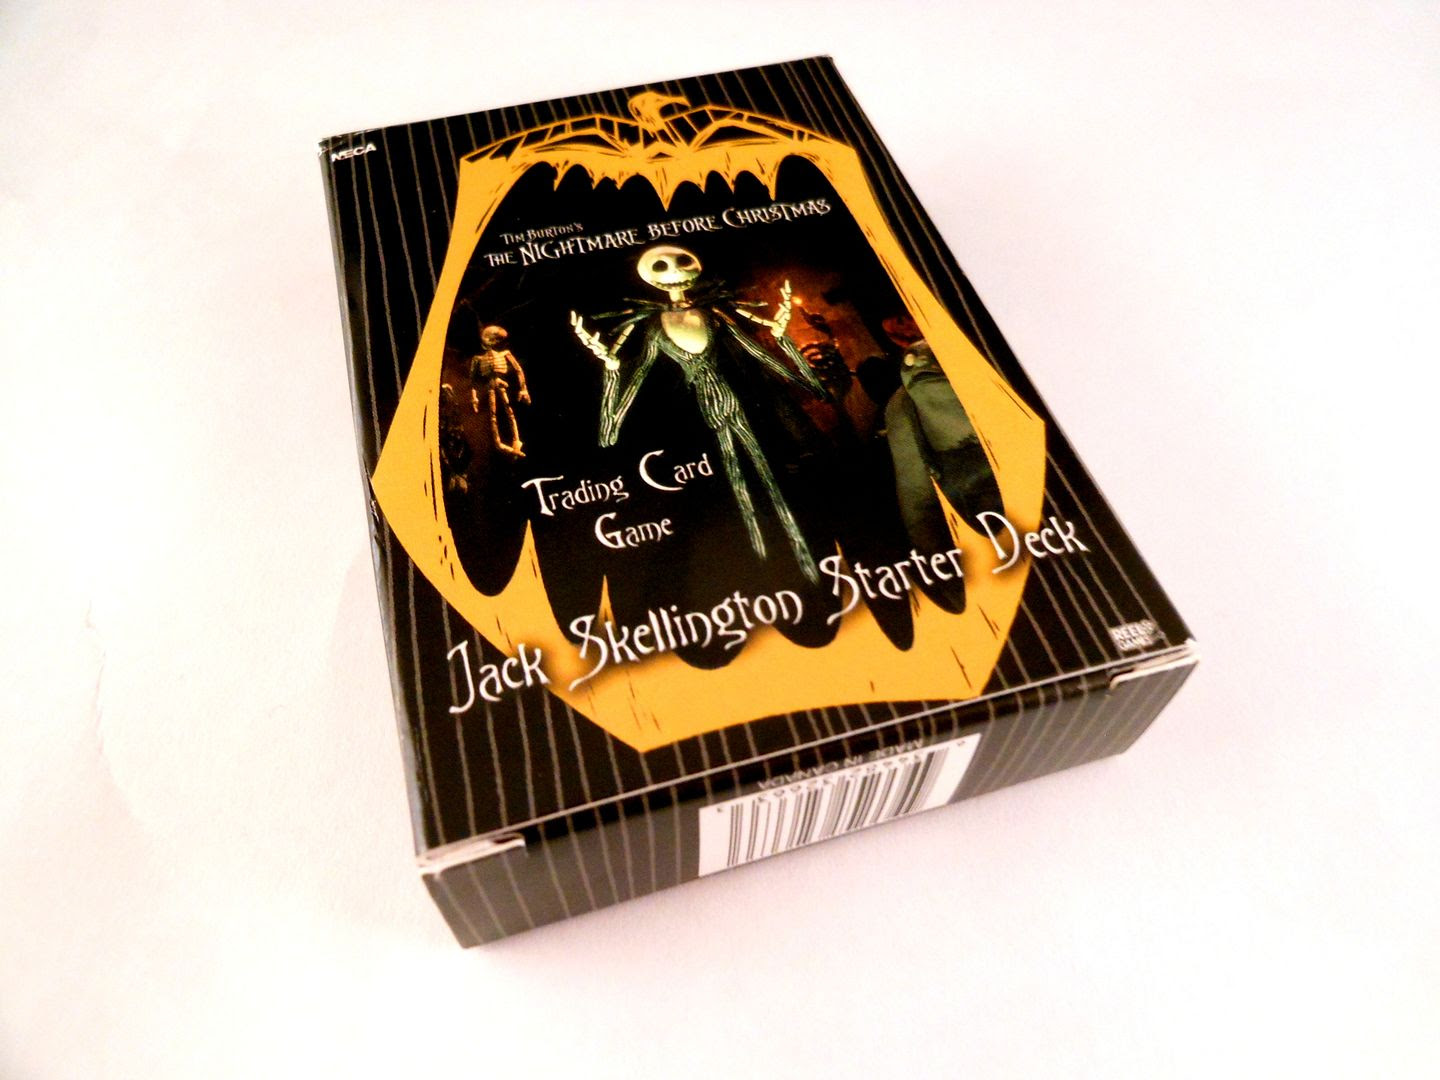 The Nightmare Before Christmas TCG box.